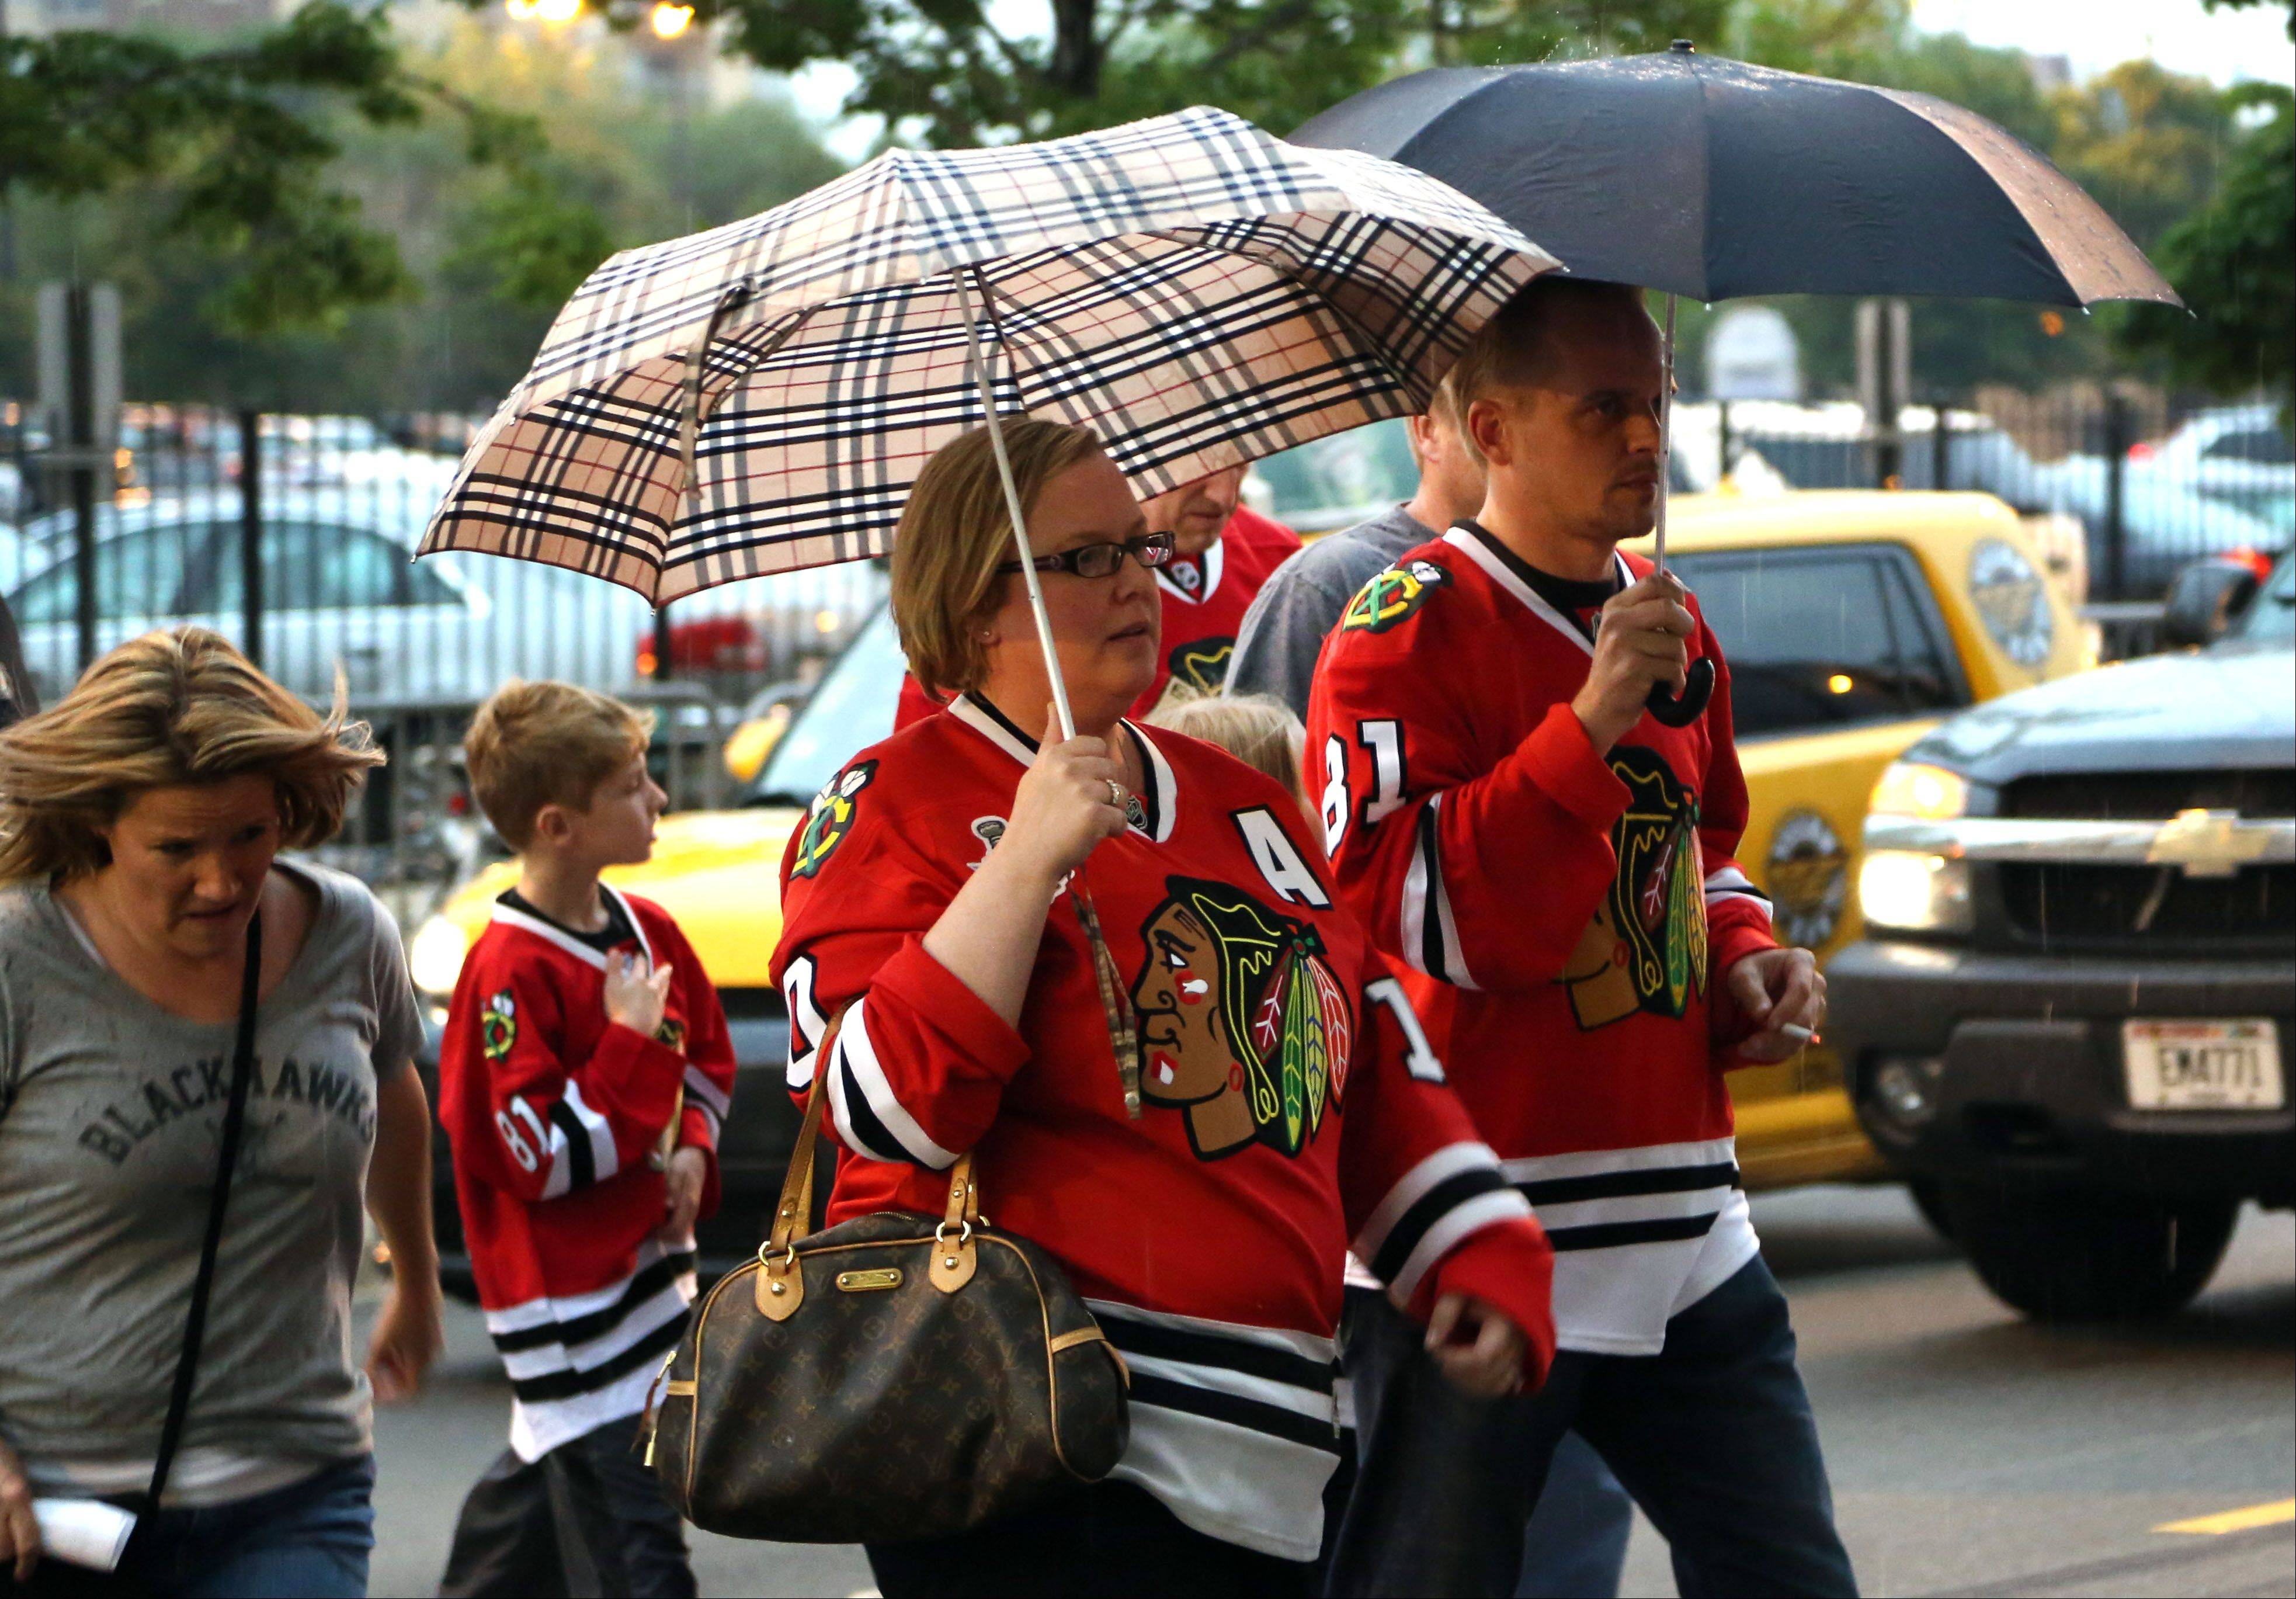 Blackhawks fans cover up as they make their way into the United Center.